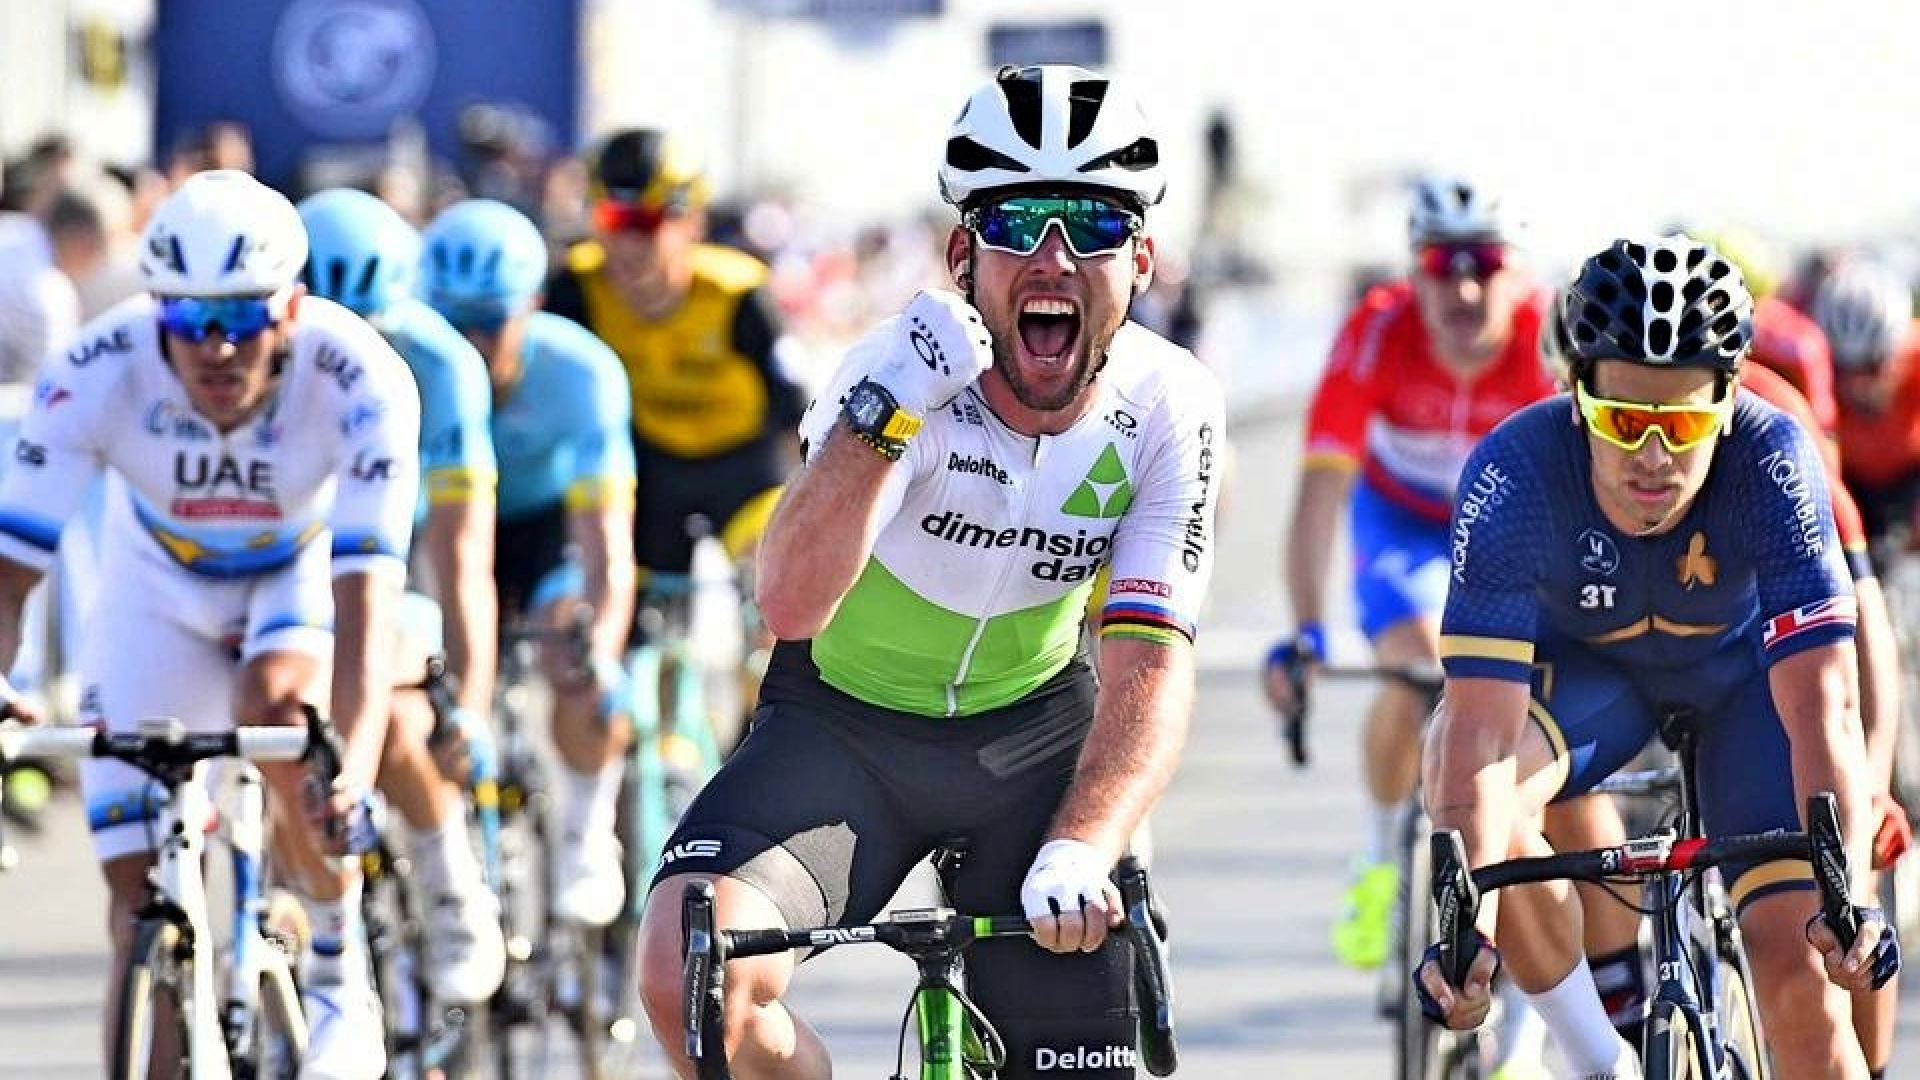 Ride the fury road, the Mark Cavendish's story